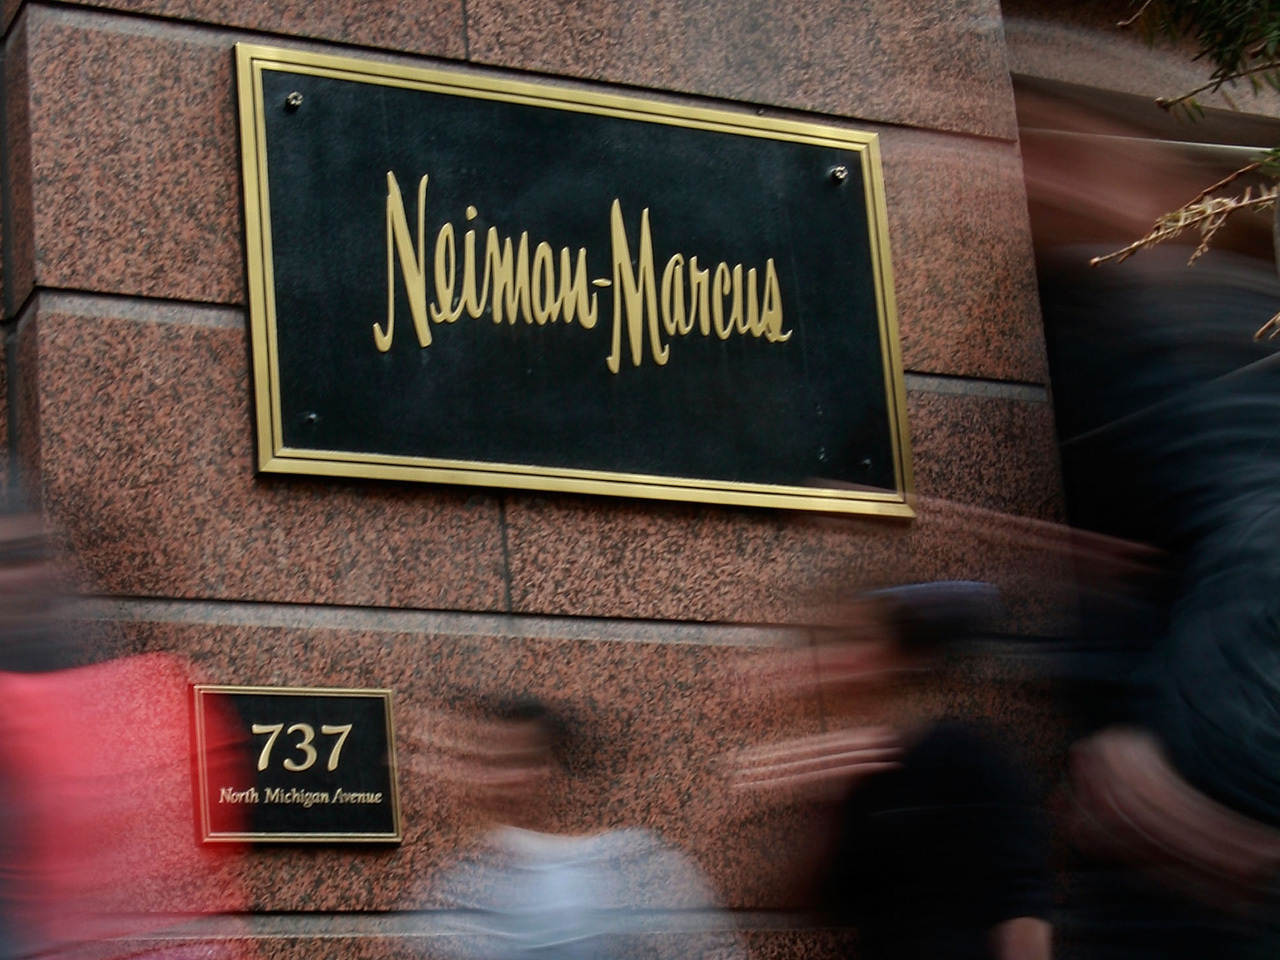 Where to Find Neiman Marcus Coupon Codes Neiman Marcus may be a high-end shopping destination for brands like Chanel, Valentino and Tory Burch, but you can still find Neiman Marcus promo codes and other special offers.